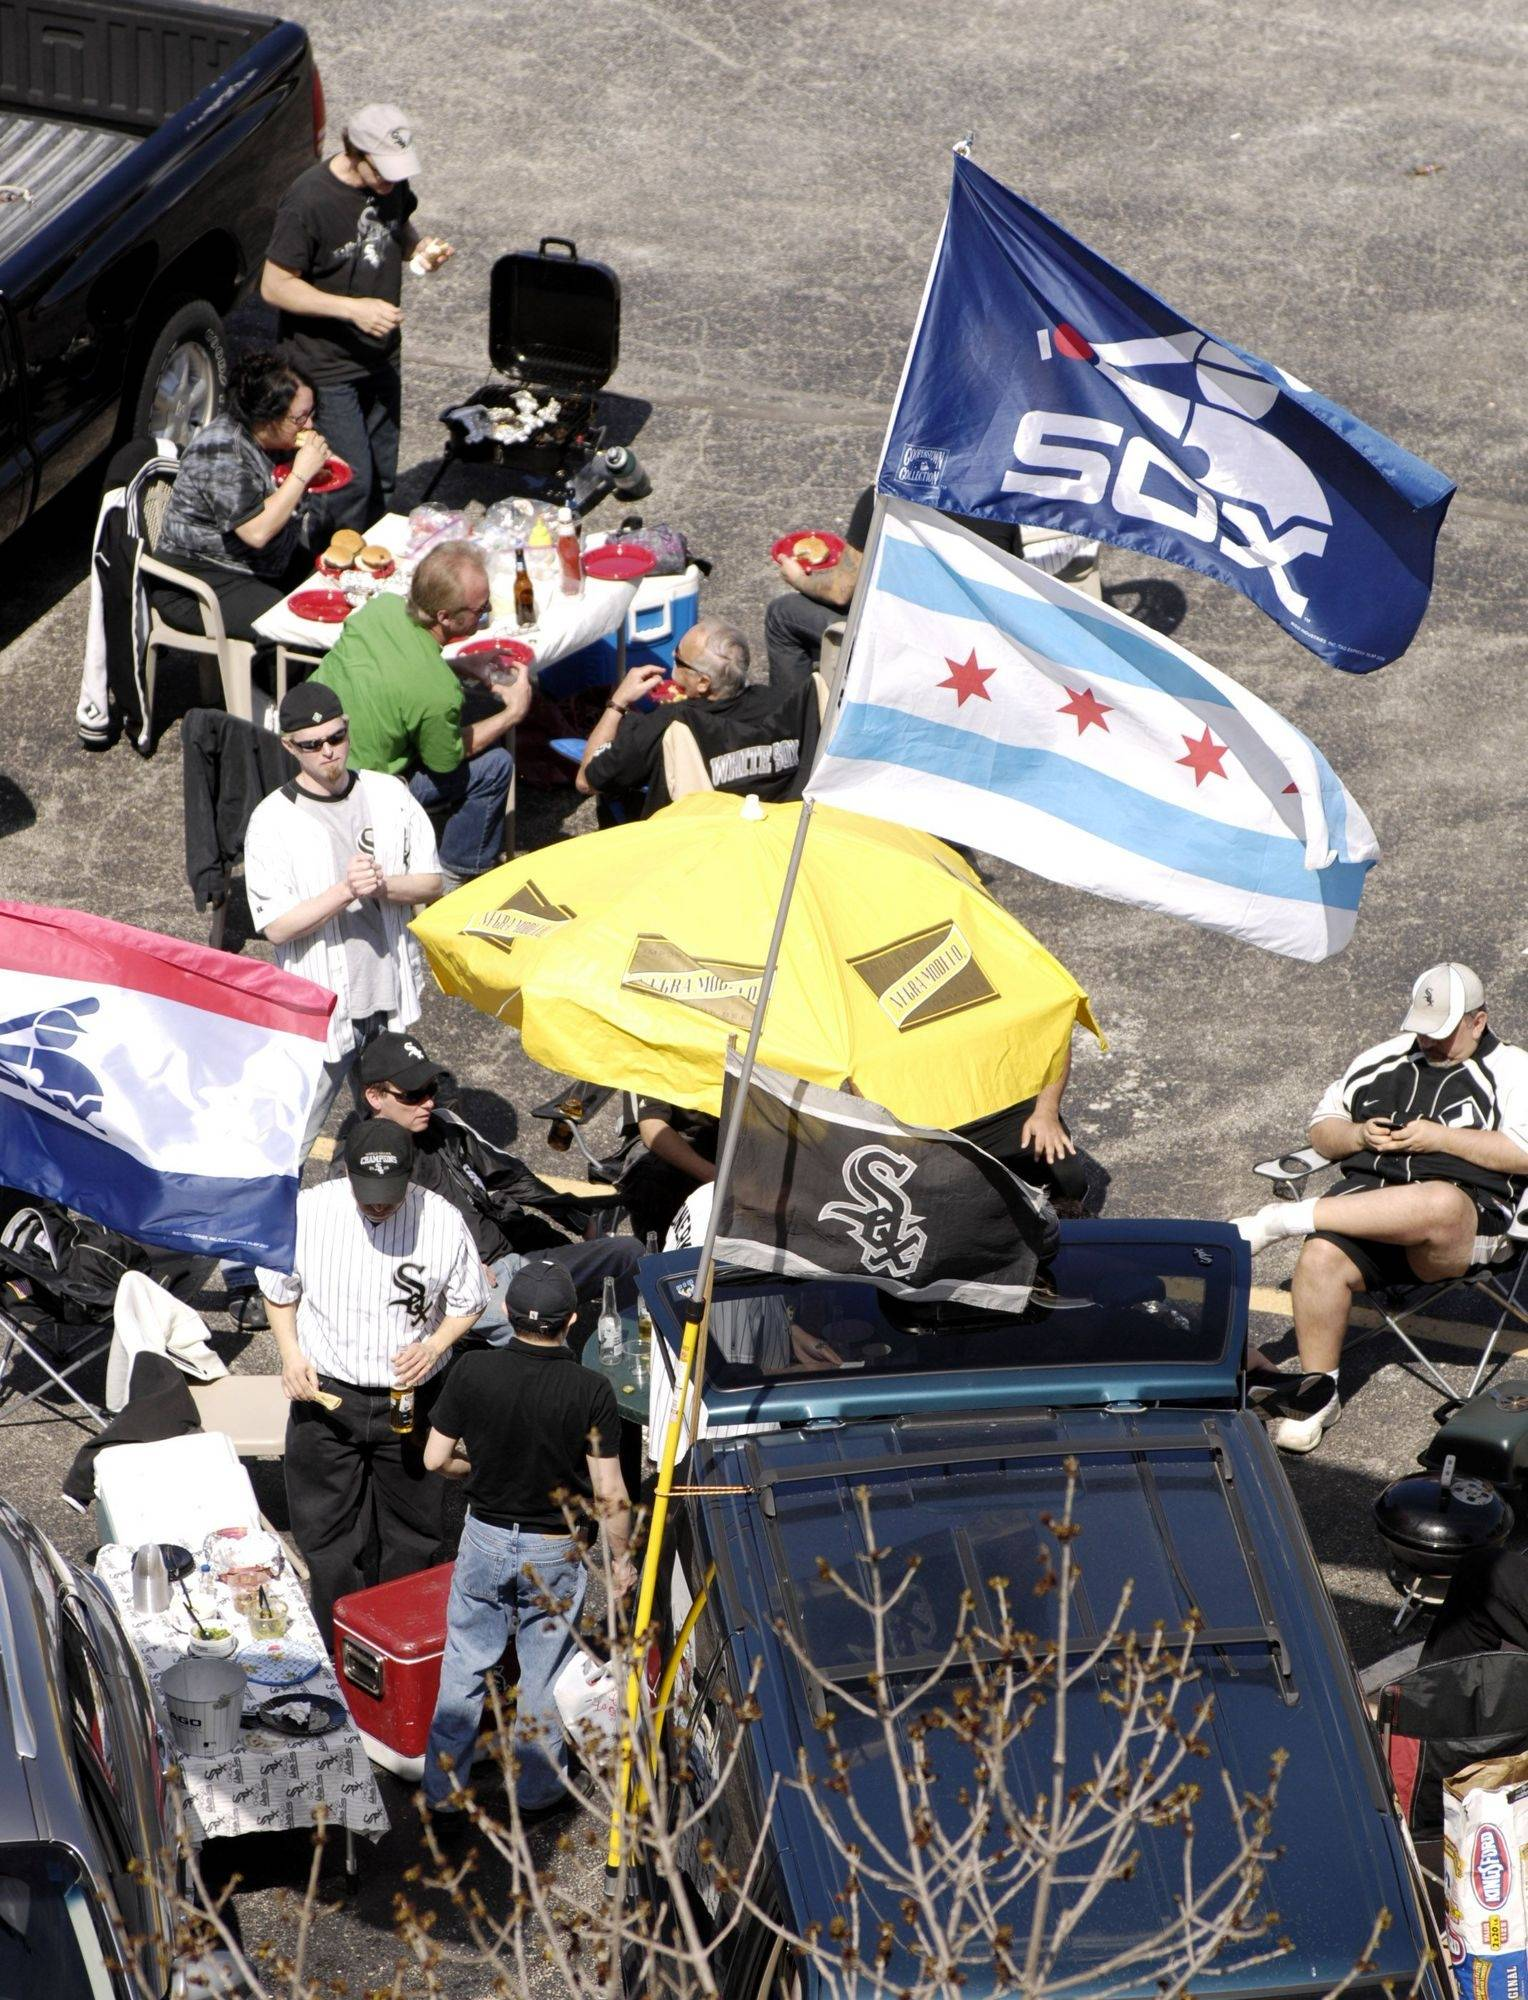 Flags flap in the breeze as tailgaters dine before the Chicago White Sox kick off the season with their home opener against the Cleveland Indians.